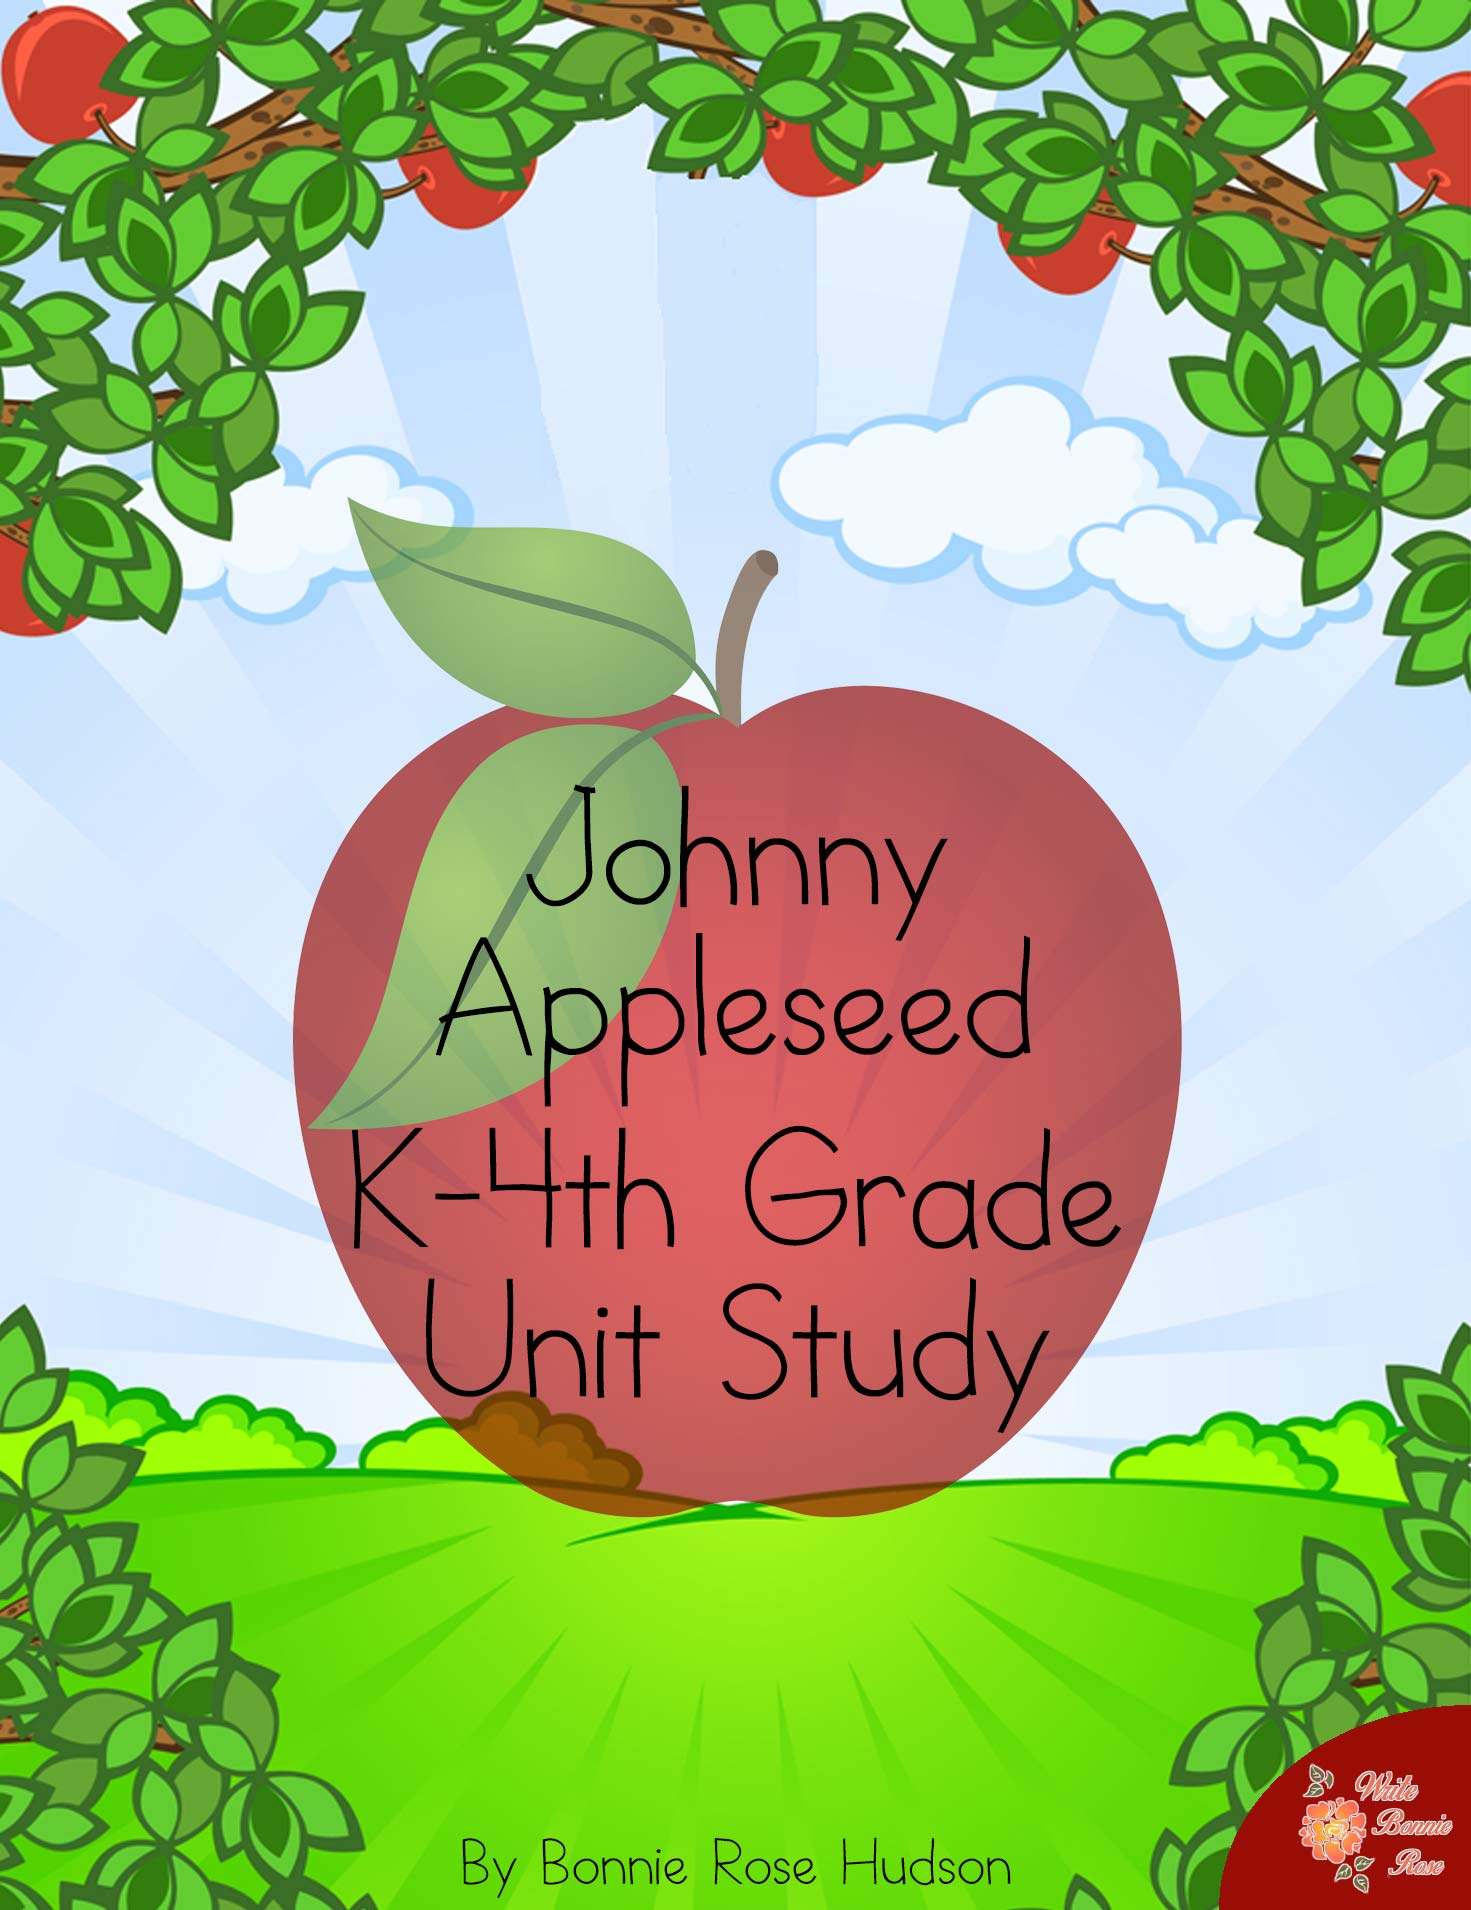 Johnny Appleseed K-4th Unit Study (e-book)